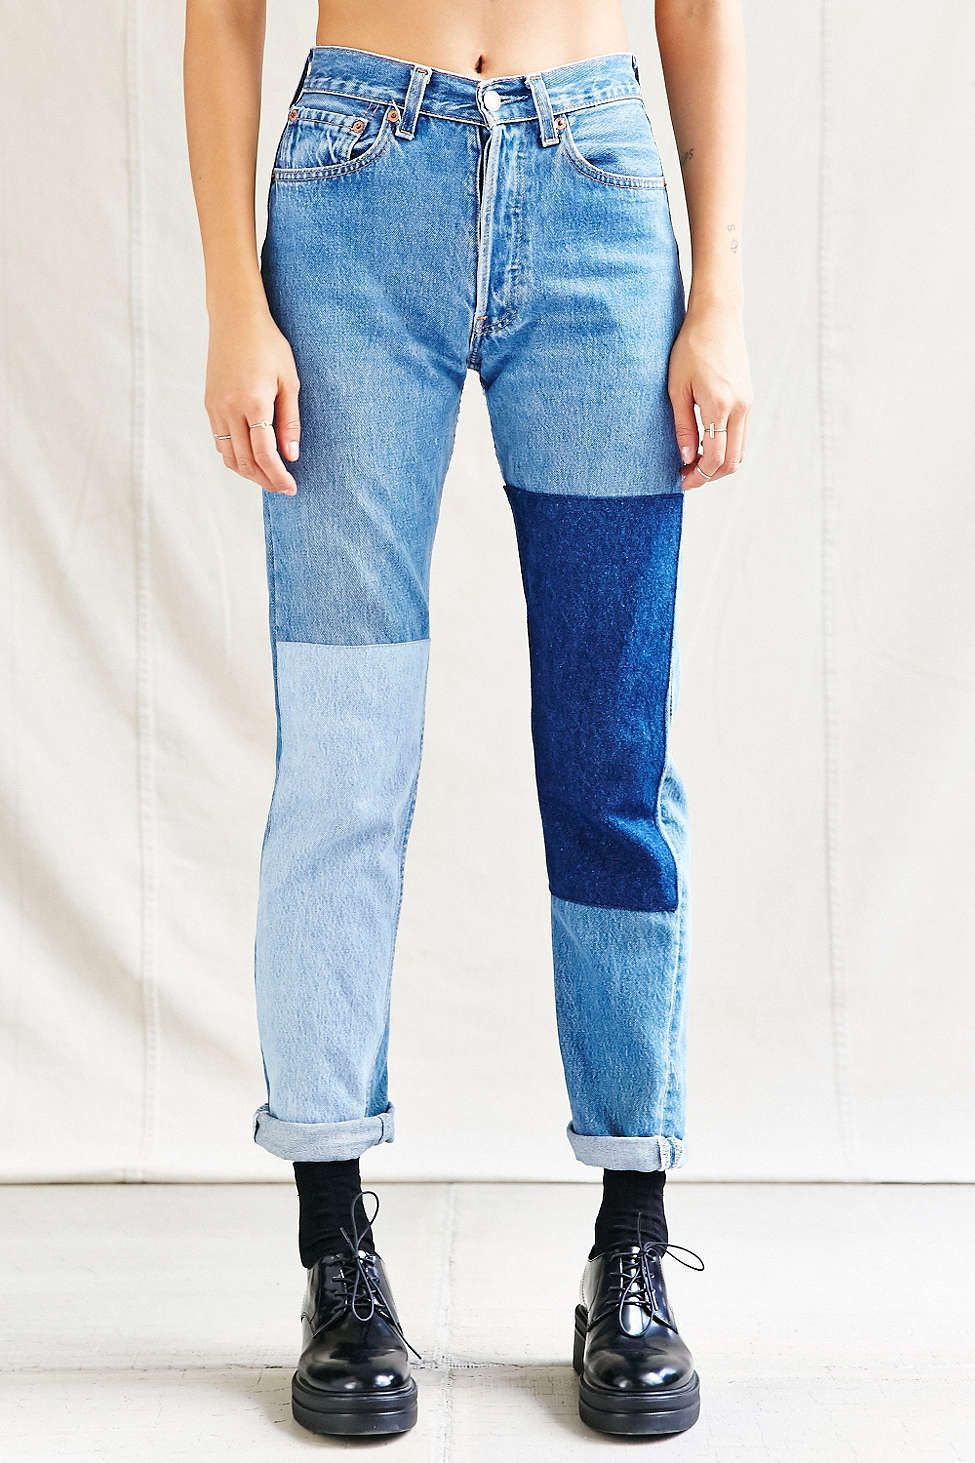 patchy jeans from Urban Outfitters 017e23d5e50